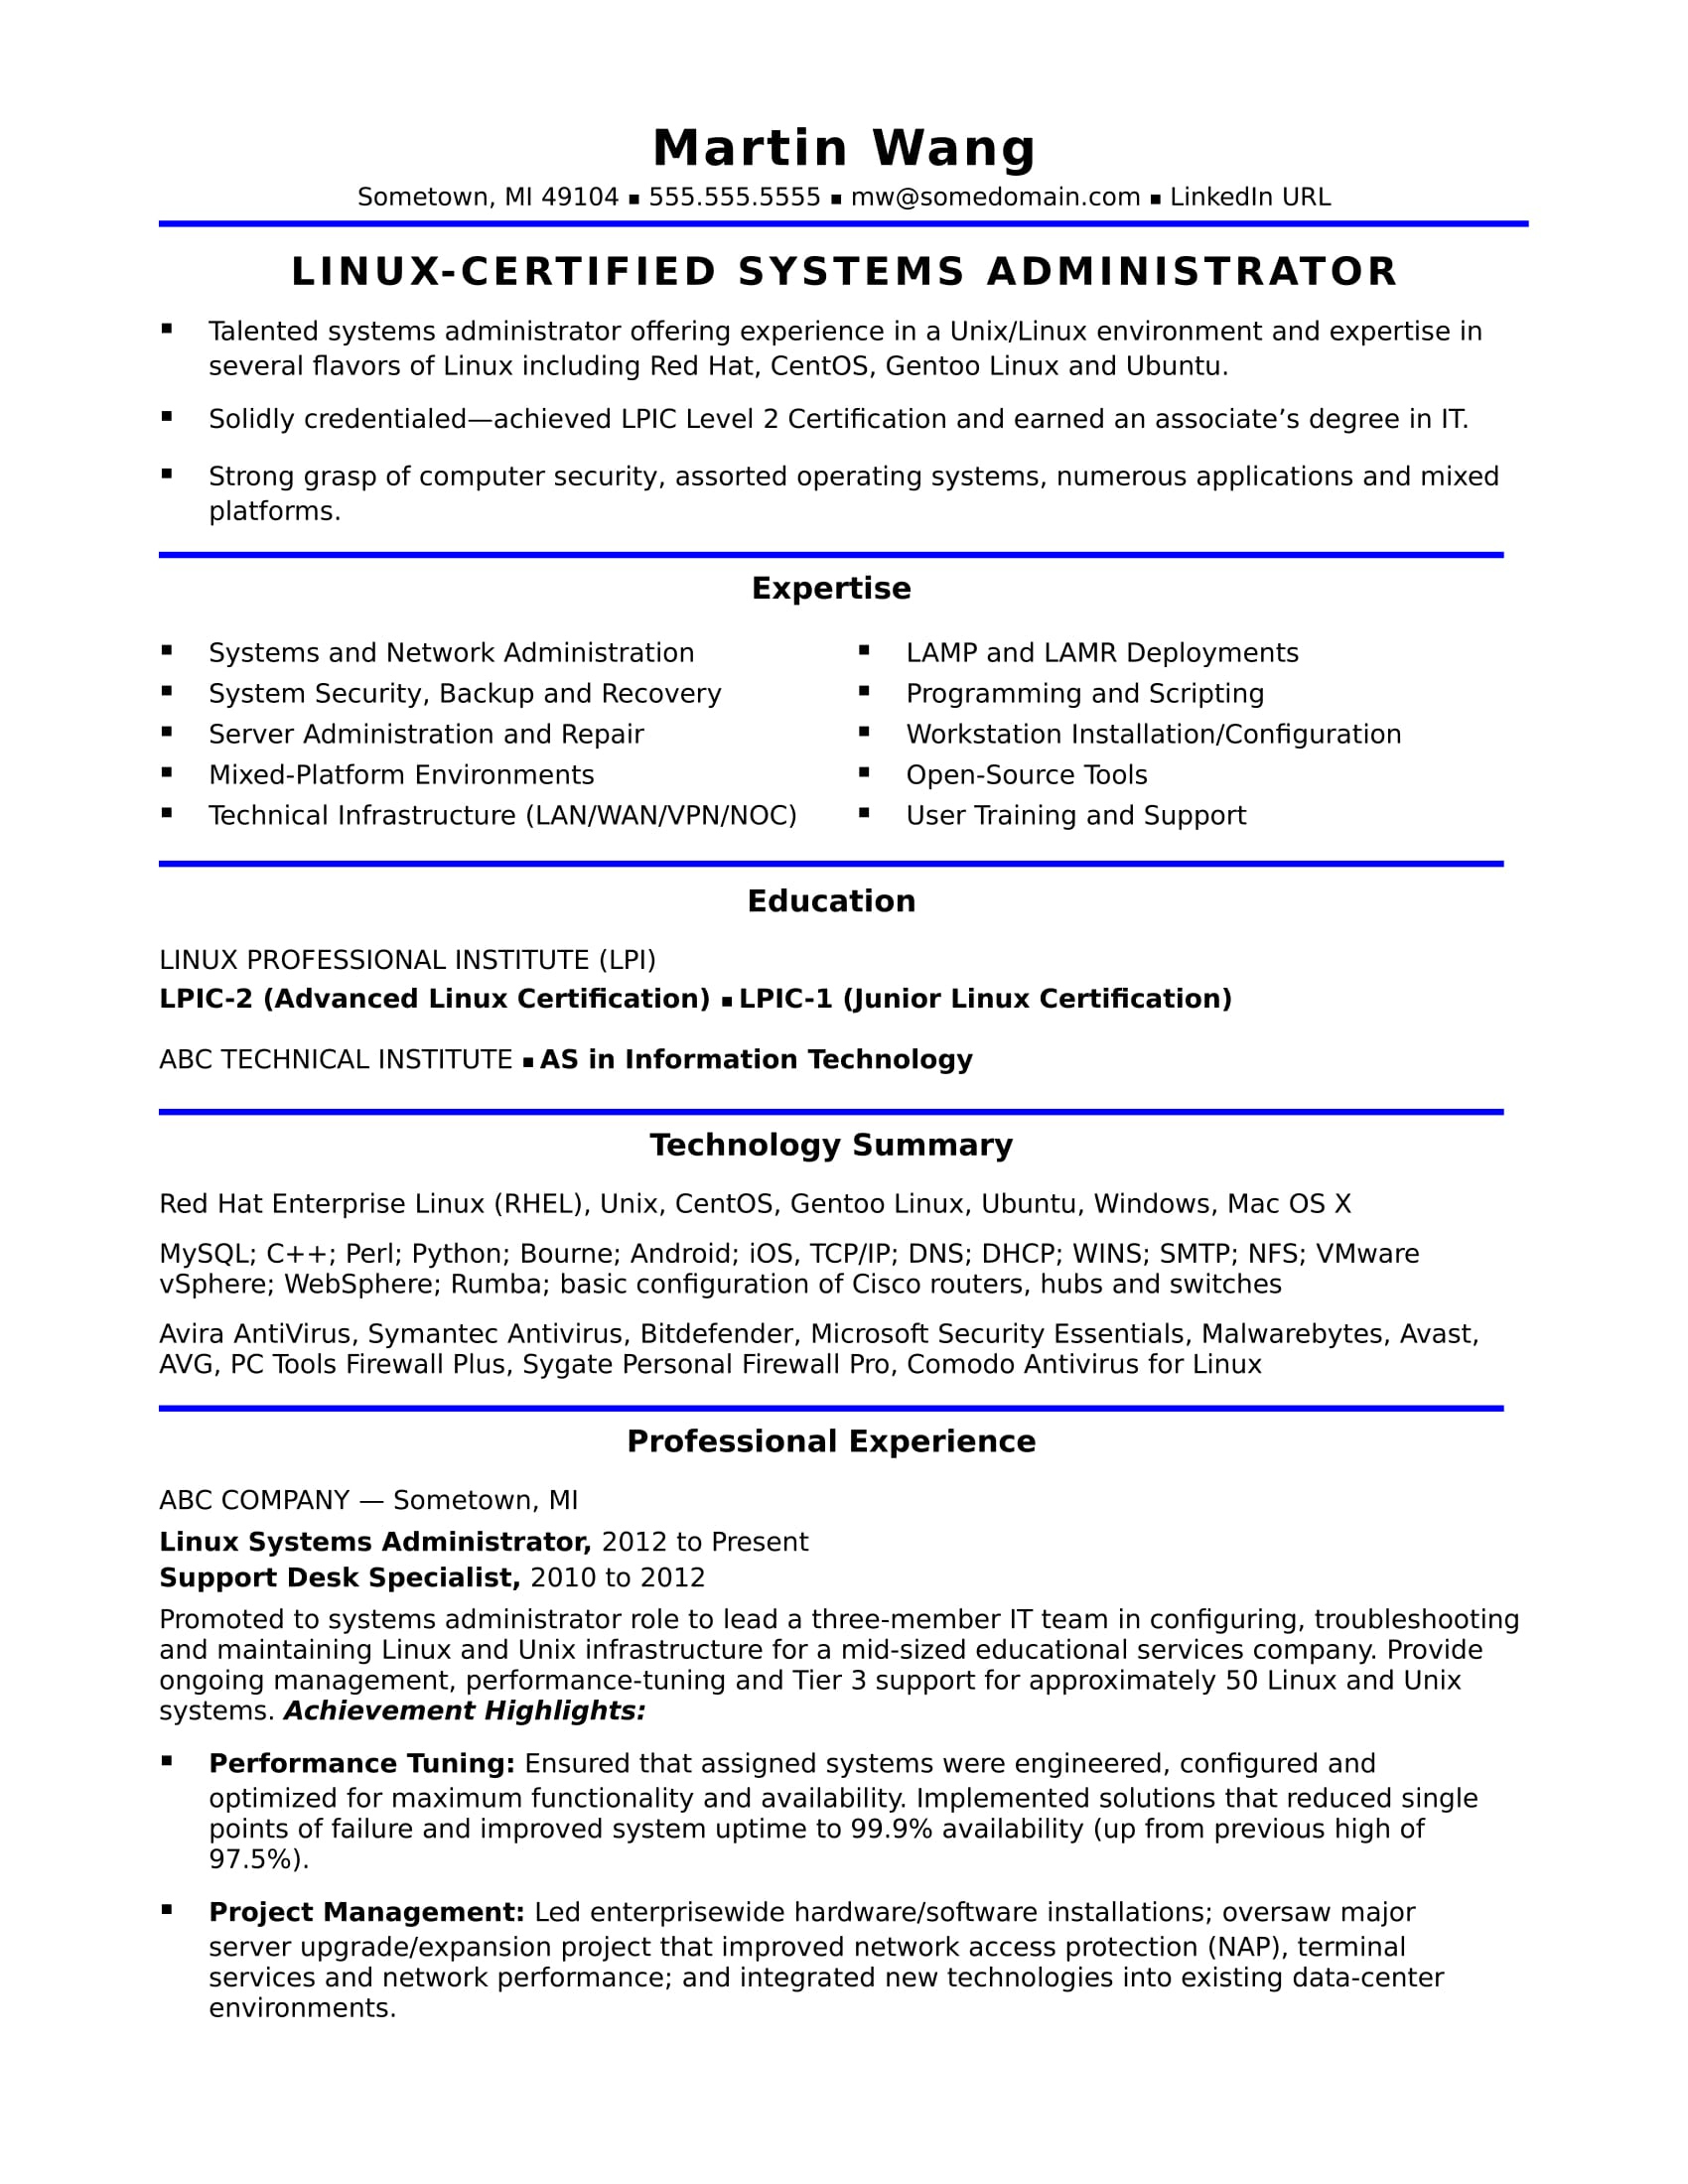 sample resume for a midlevel systems administrator - Linux Administrator Resume